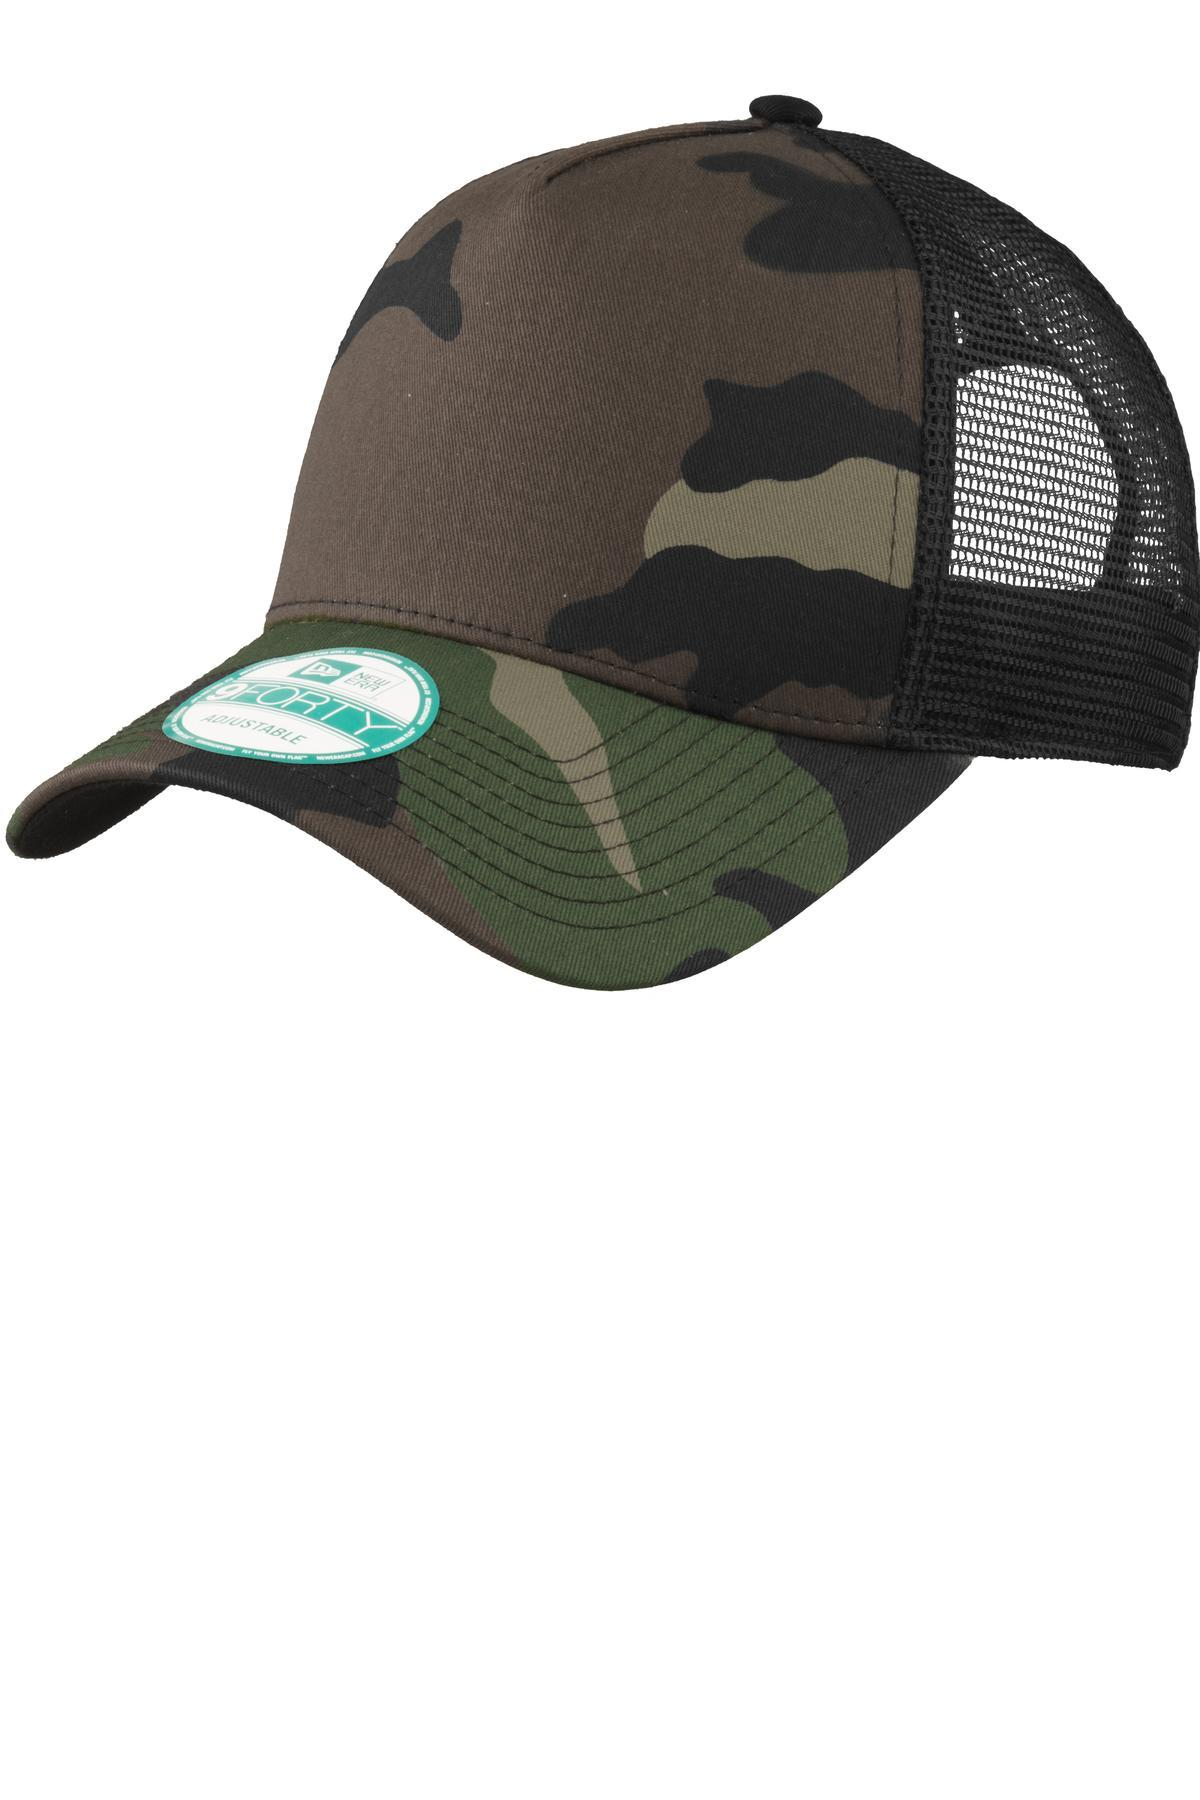 Camo/ Black - New Era NE205